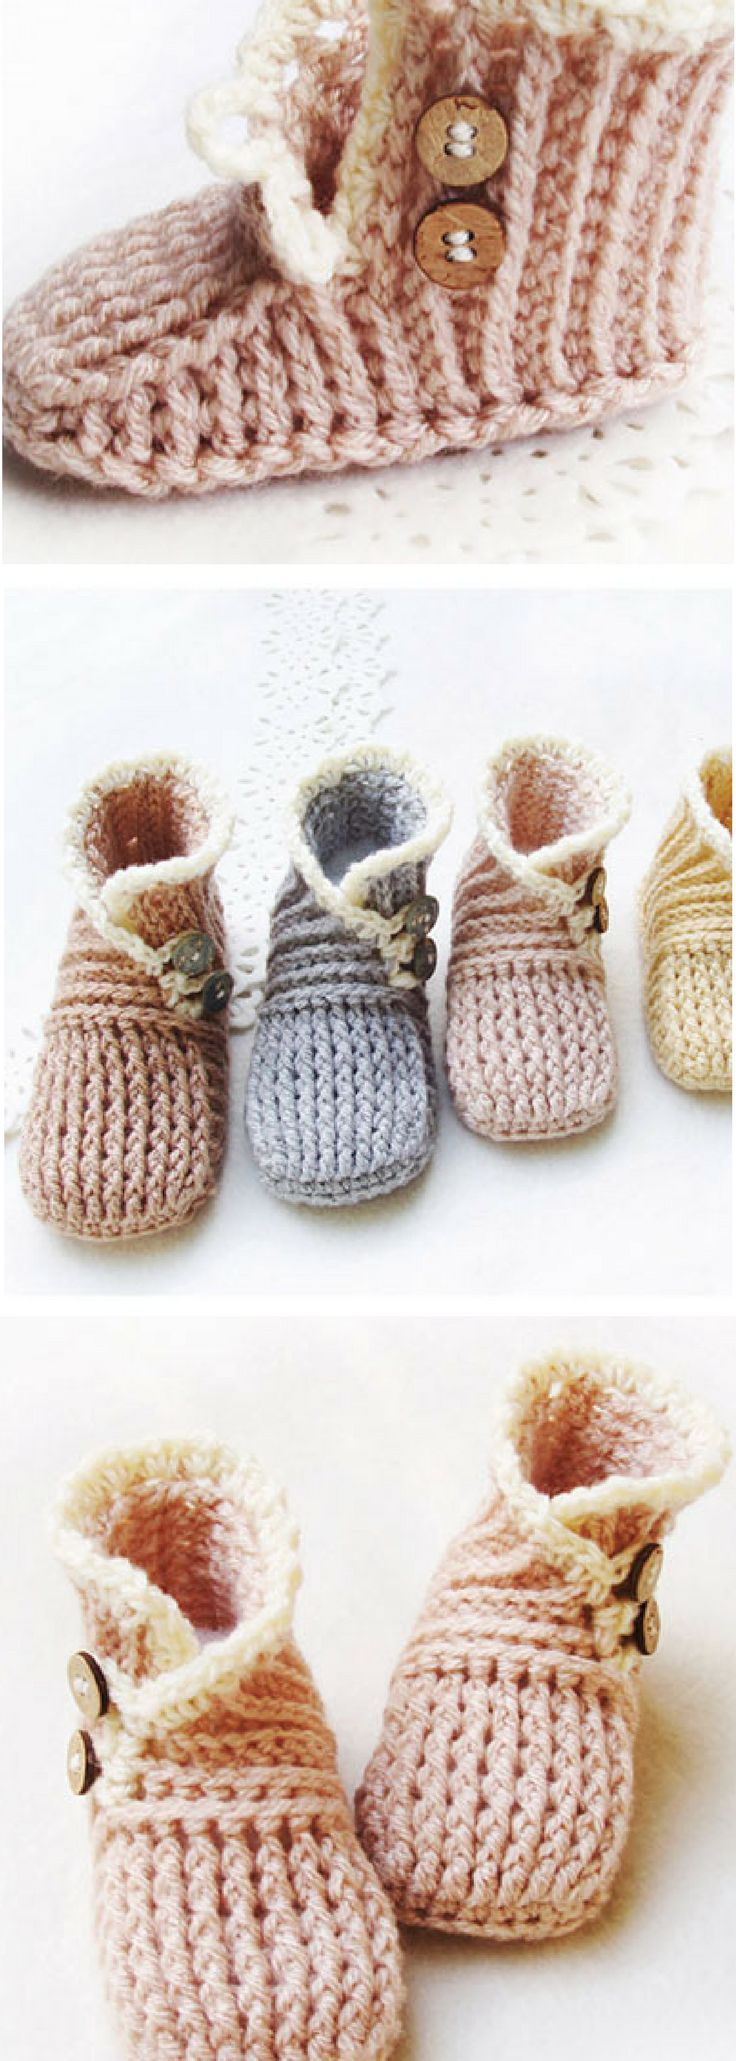 Wrap and Button Baby Booties Crochet Pattern- Baby Accessories - Crochet Baby Shower Gifts - Pattern is available for download after purchase #ad